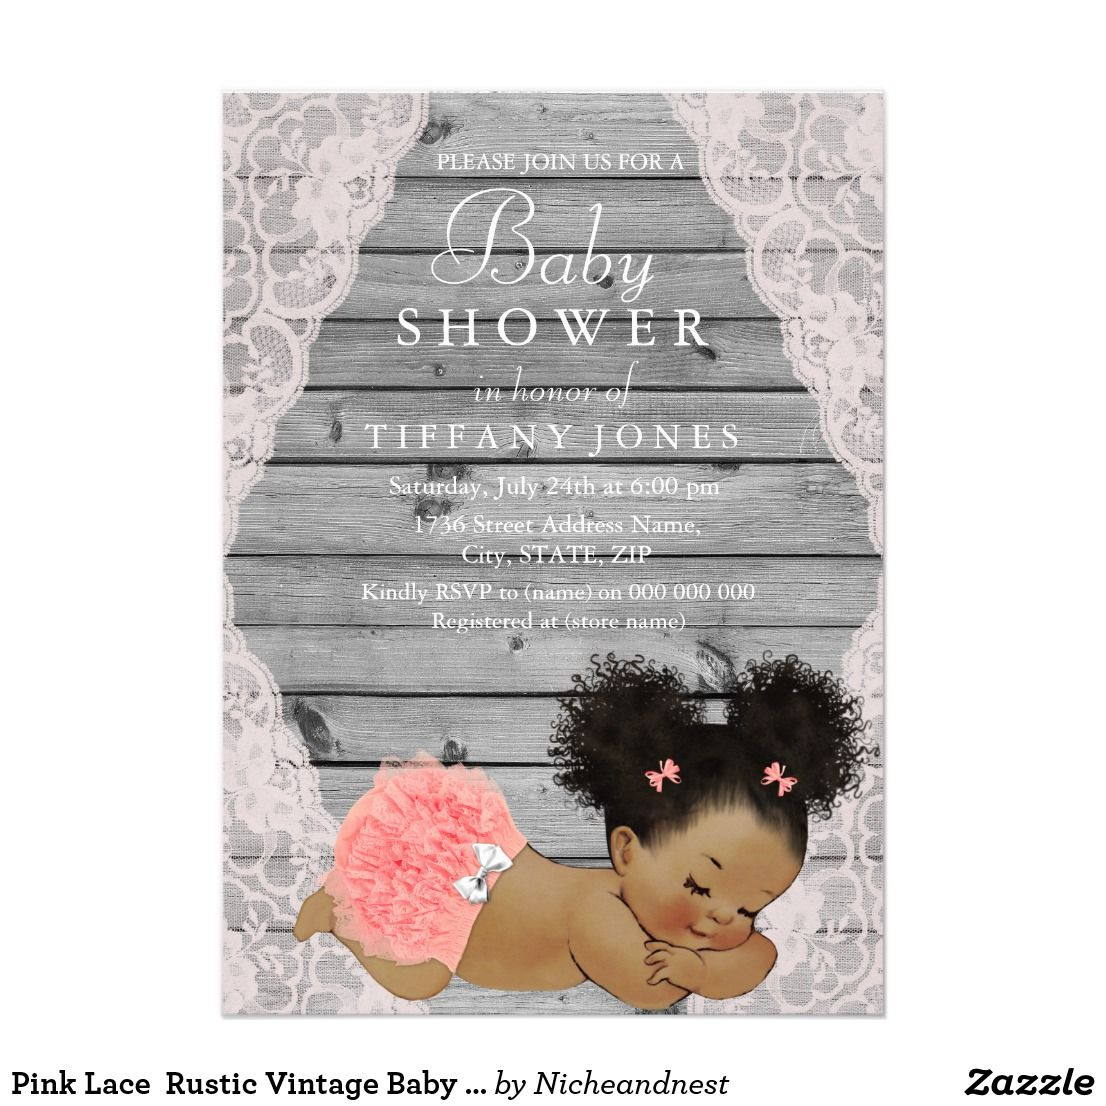 Pink Lace Rustic Vintage Baby Shower Invite | Vintage baby showers ...